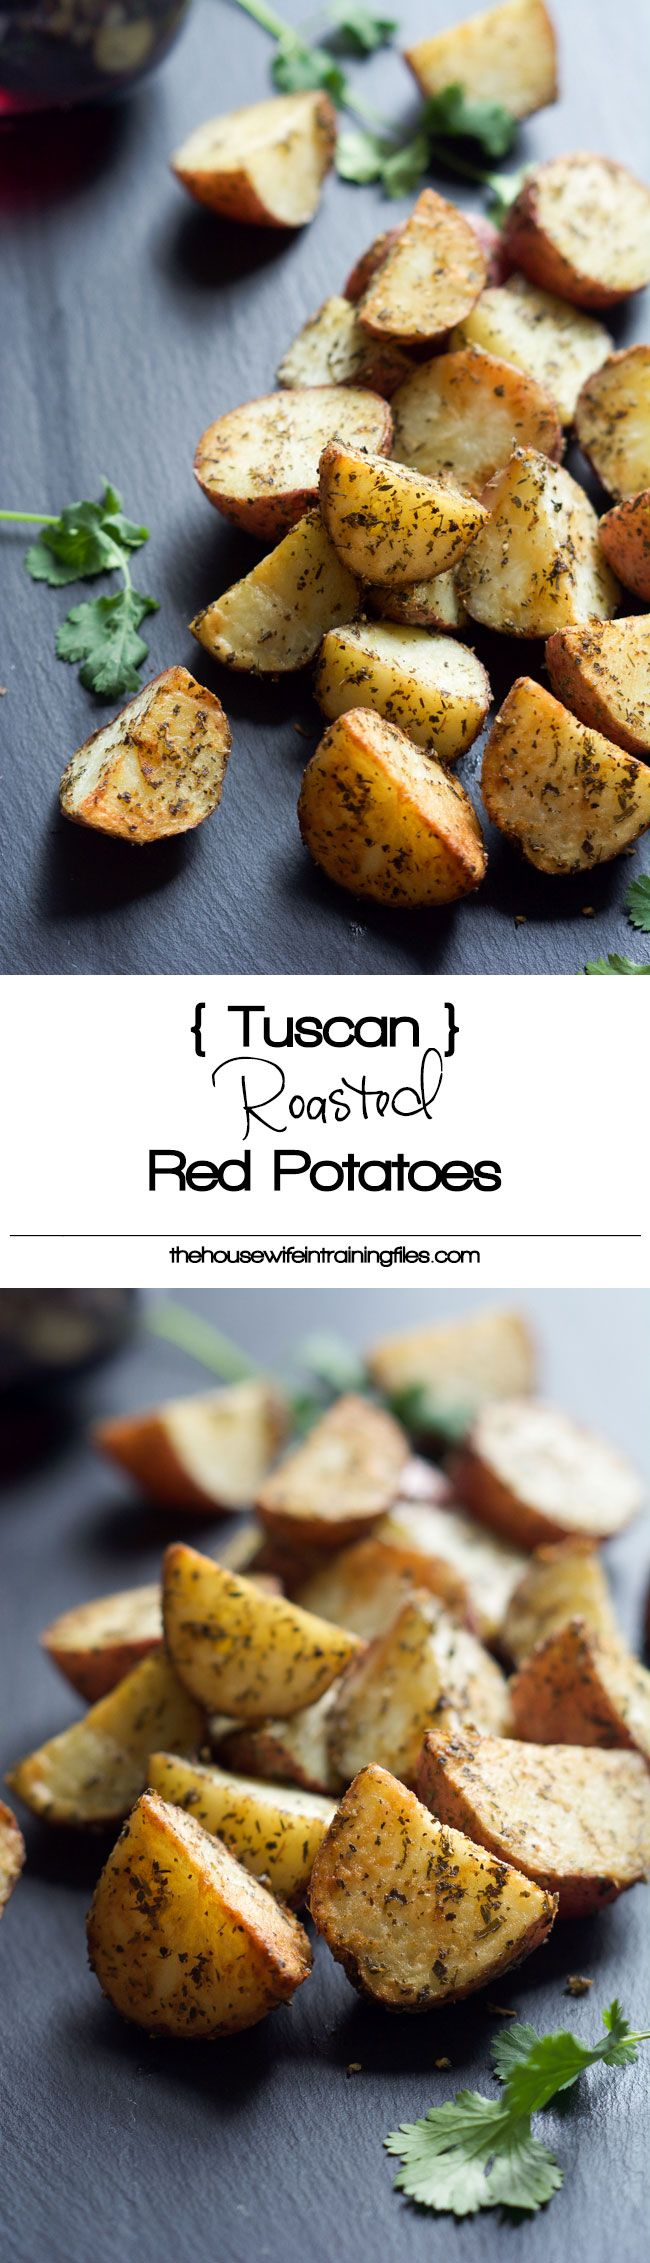 A simple, flavorful and healthy side dish! Tuscan Oven Roasted Red Potatoes are seasoned with herbs you already have in your pantry and will be on the table in under 30 minutes!